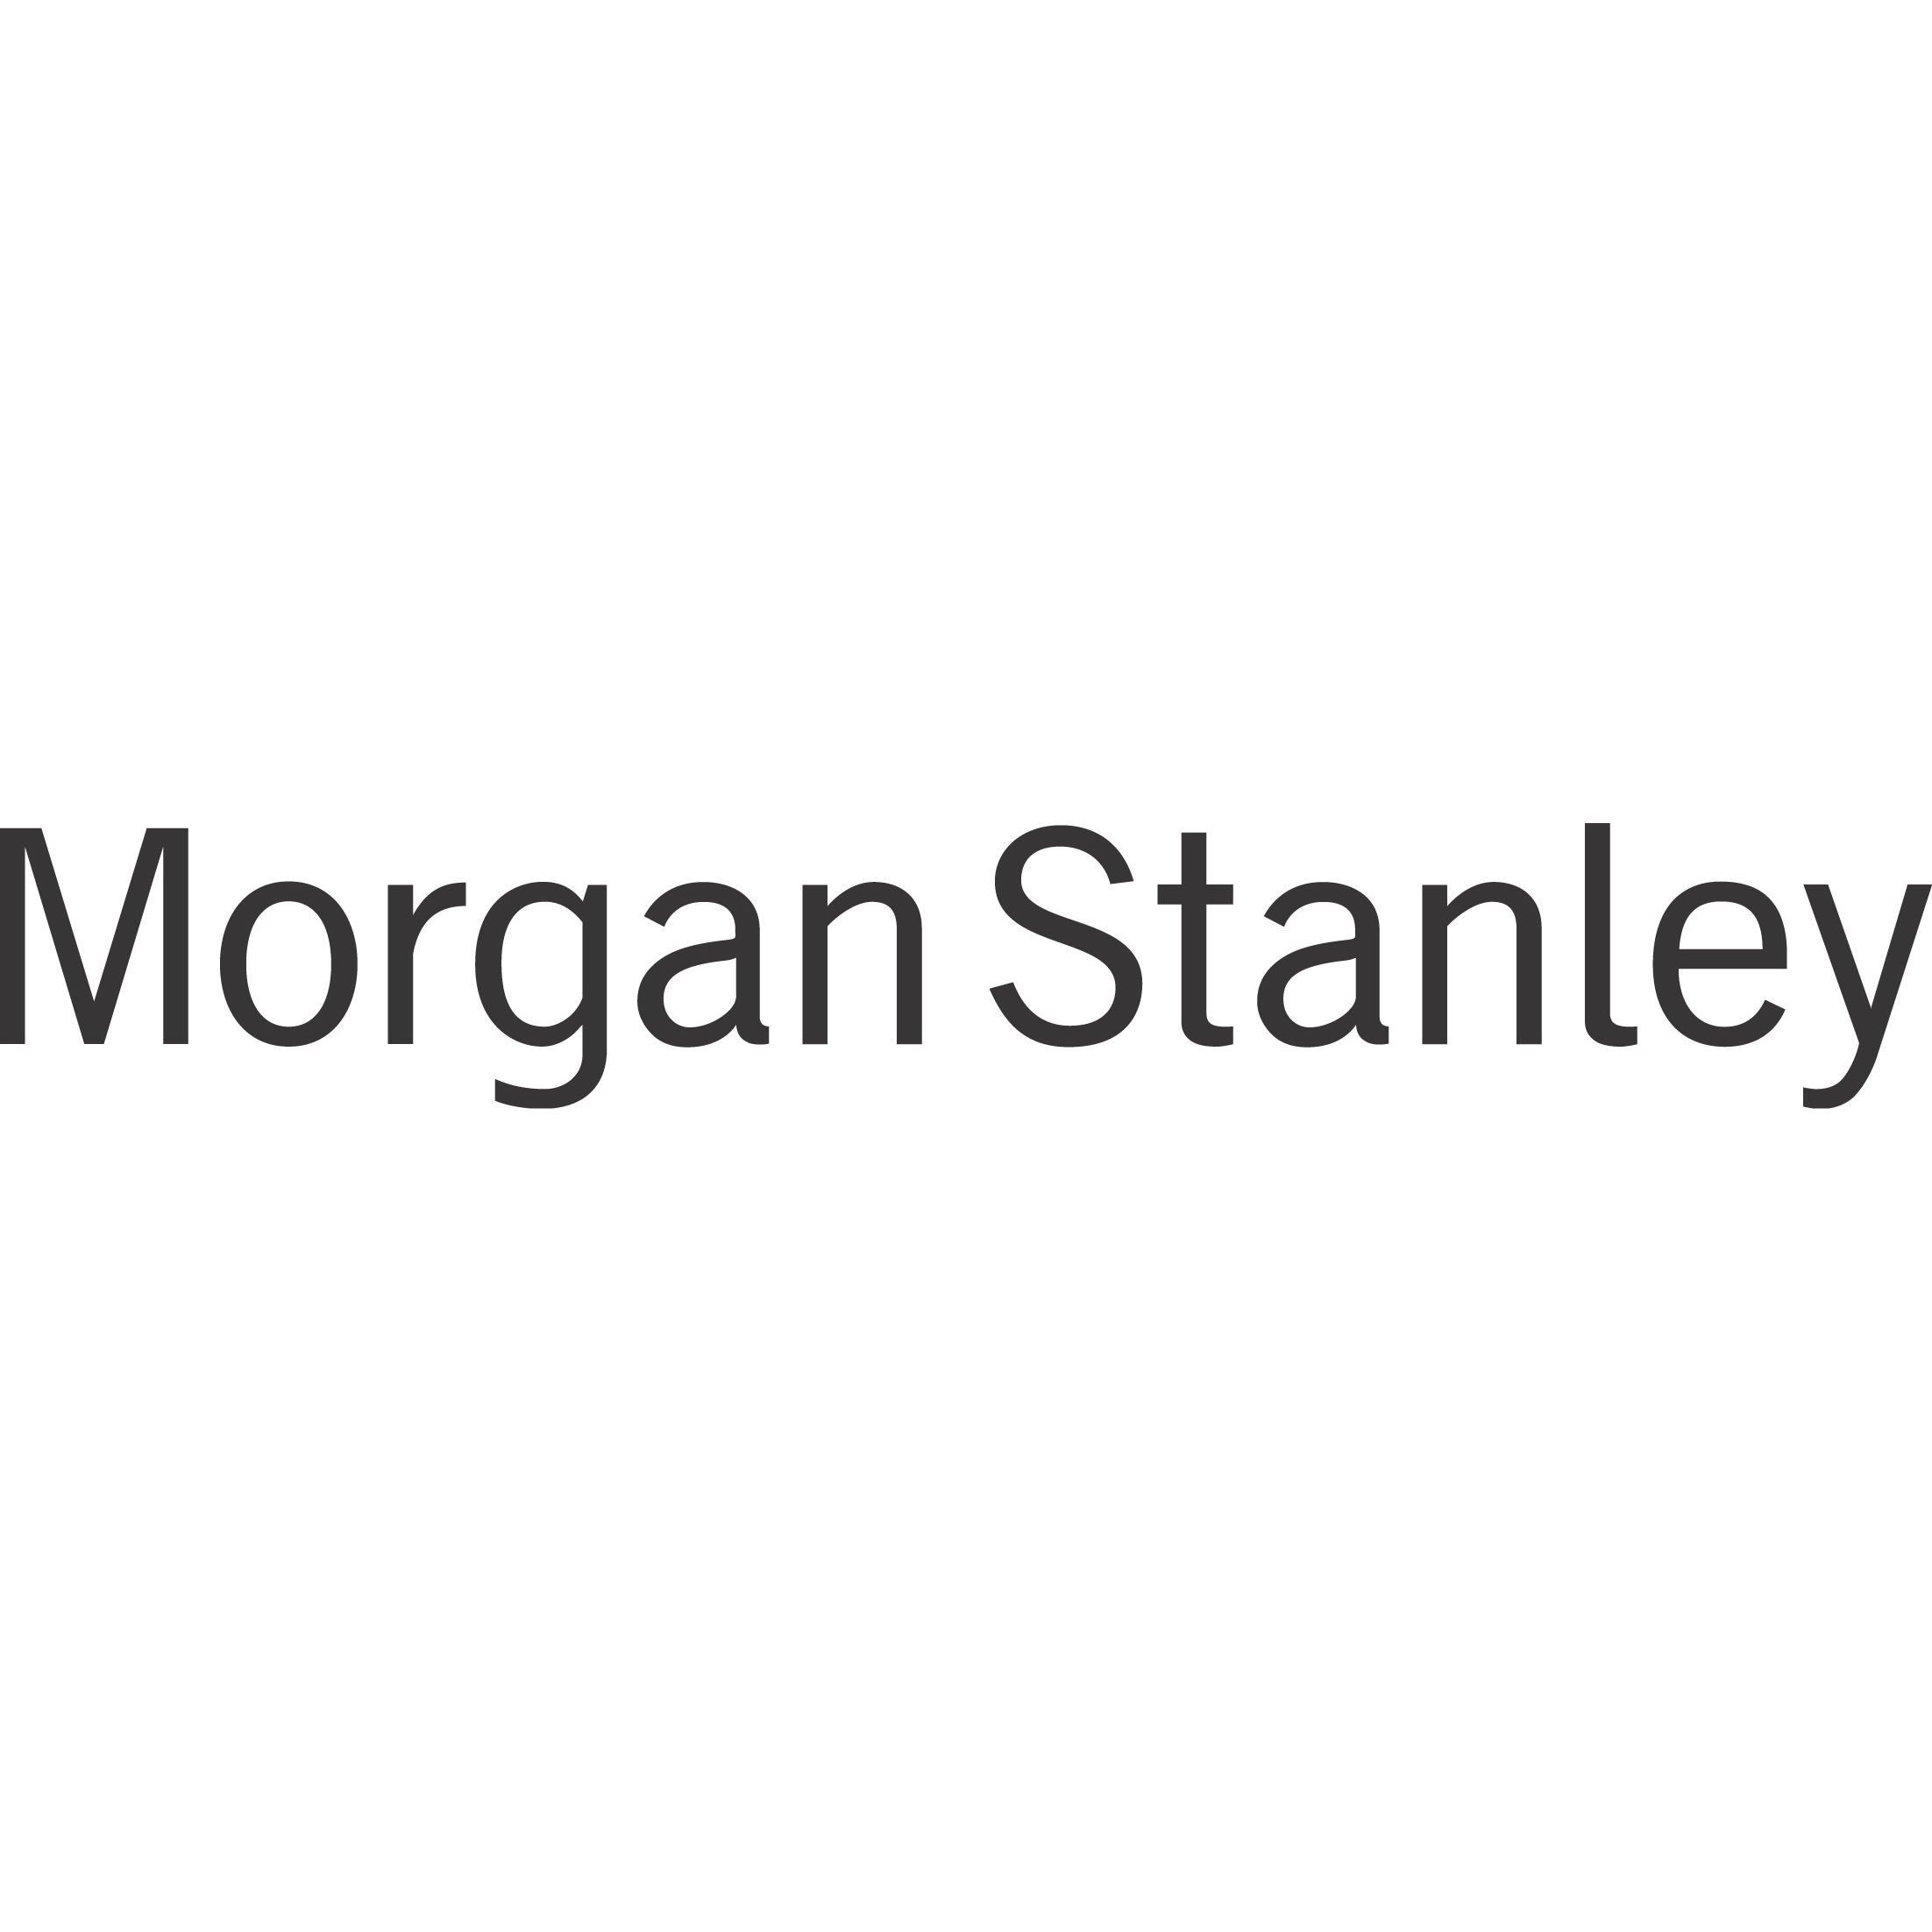 Kim R Hawkinson - Morgan Stanley | Financial Advisor in Chicago,Illinois